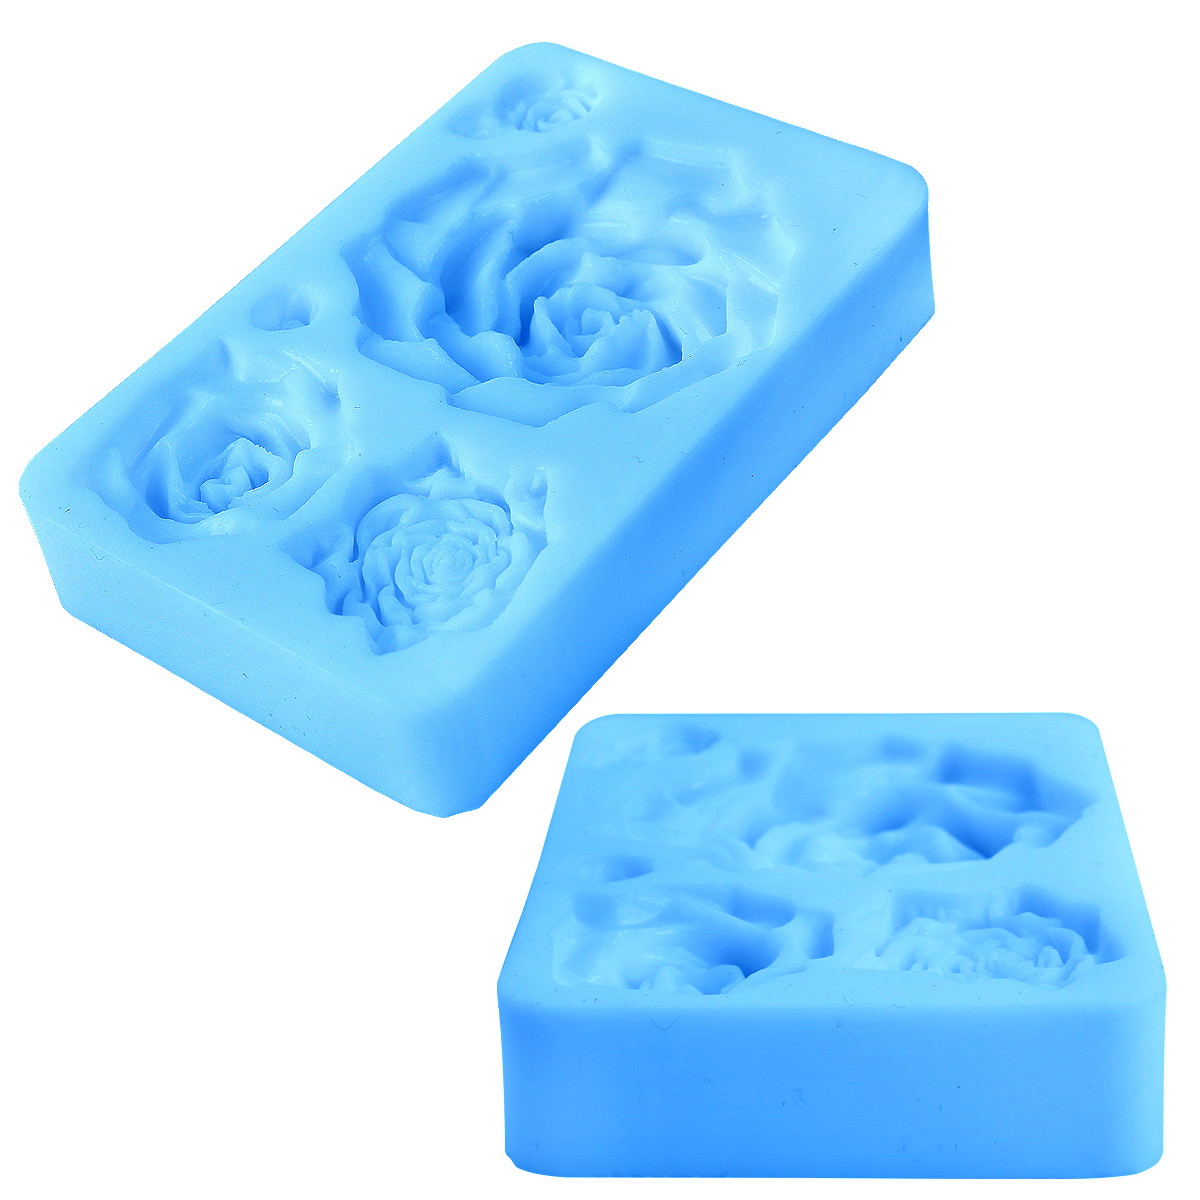 moule silicone roses 5 tailles pour p te sucre fondant g teau ebay. Black Bedroom Furniture Sets. Home Design Ideas